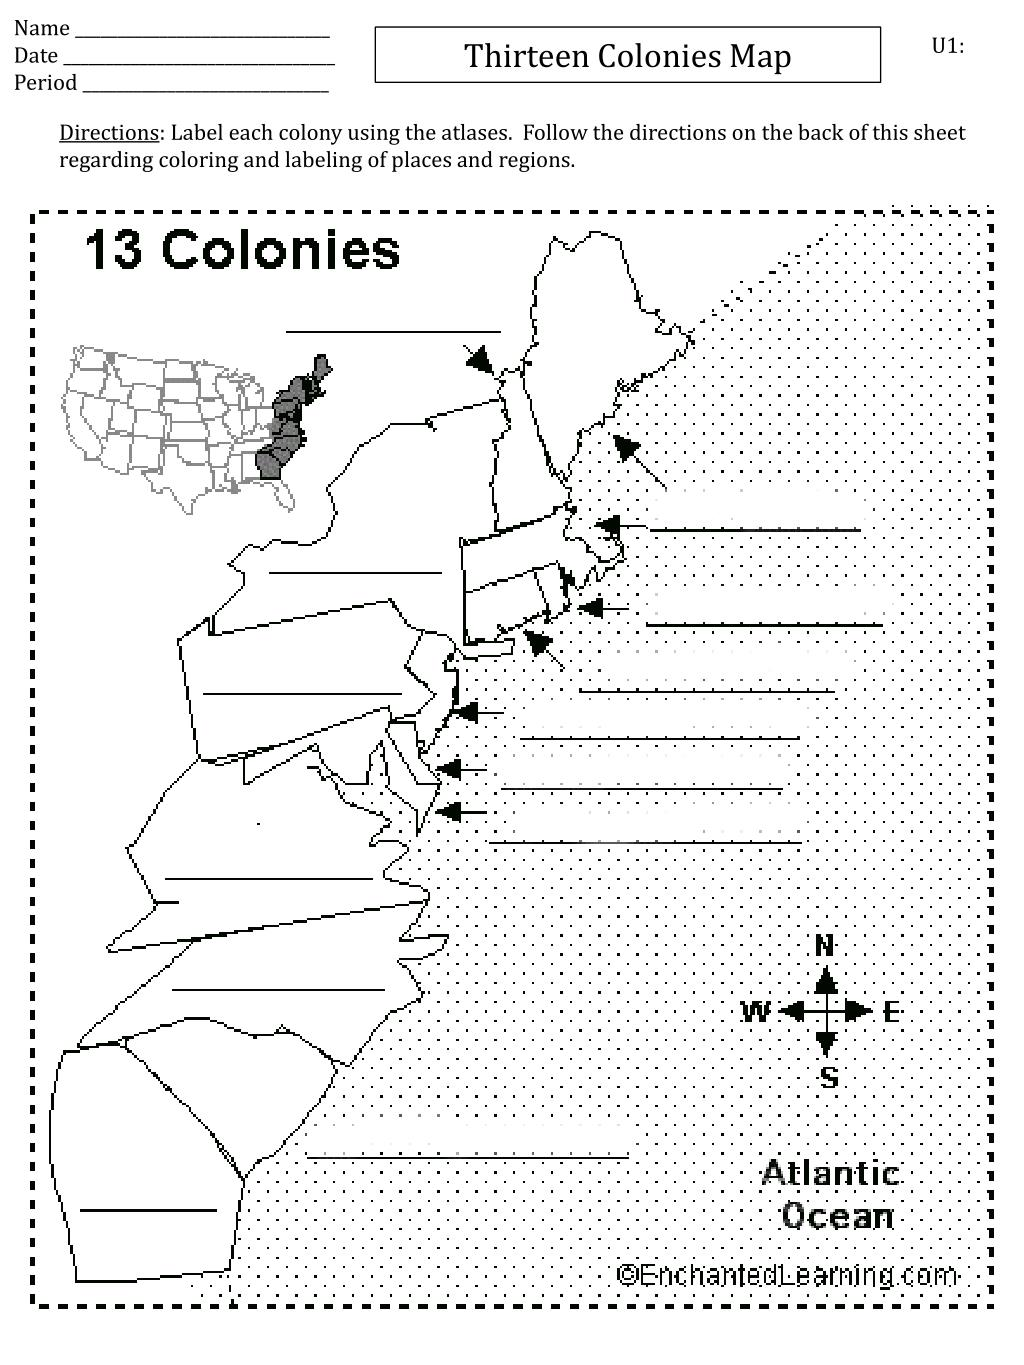 Names Of The Thirteen Colonies The 13 Colonies In The